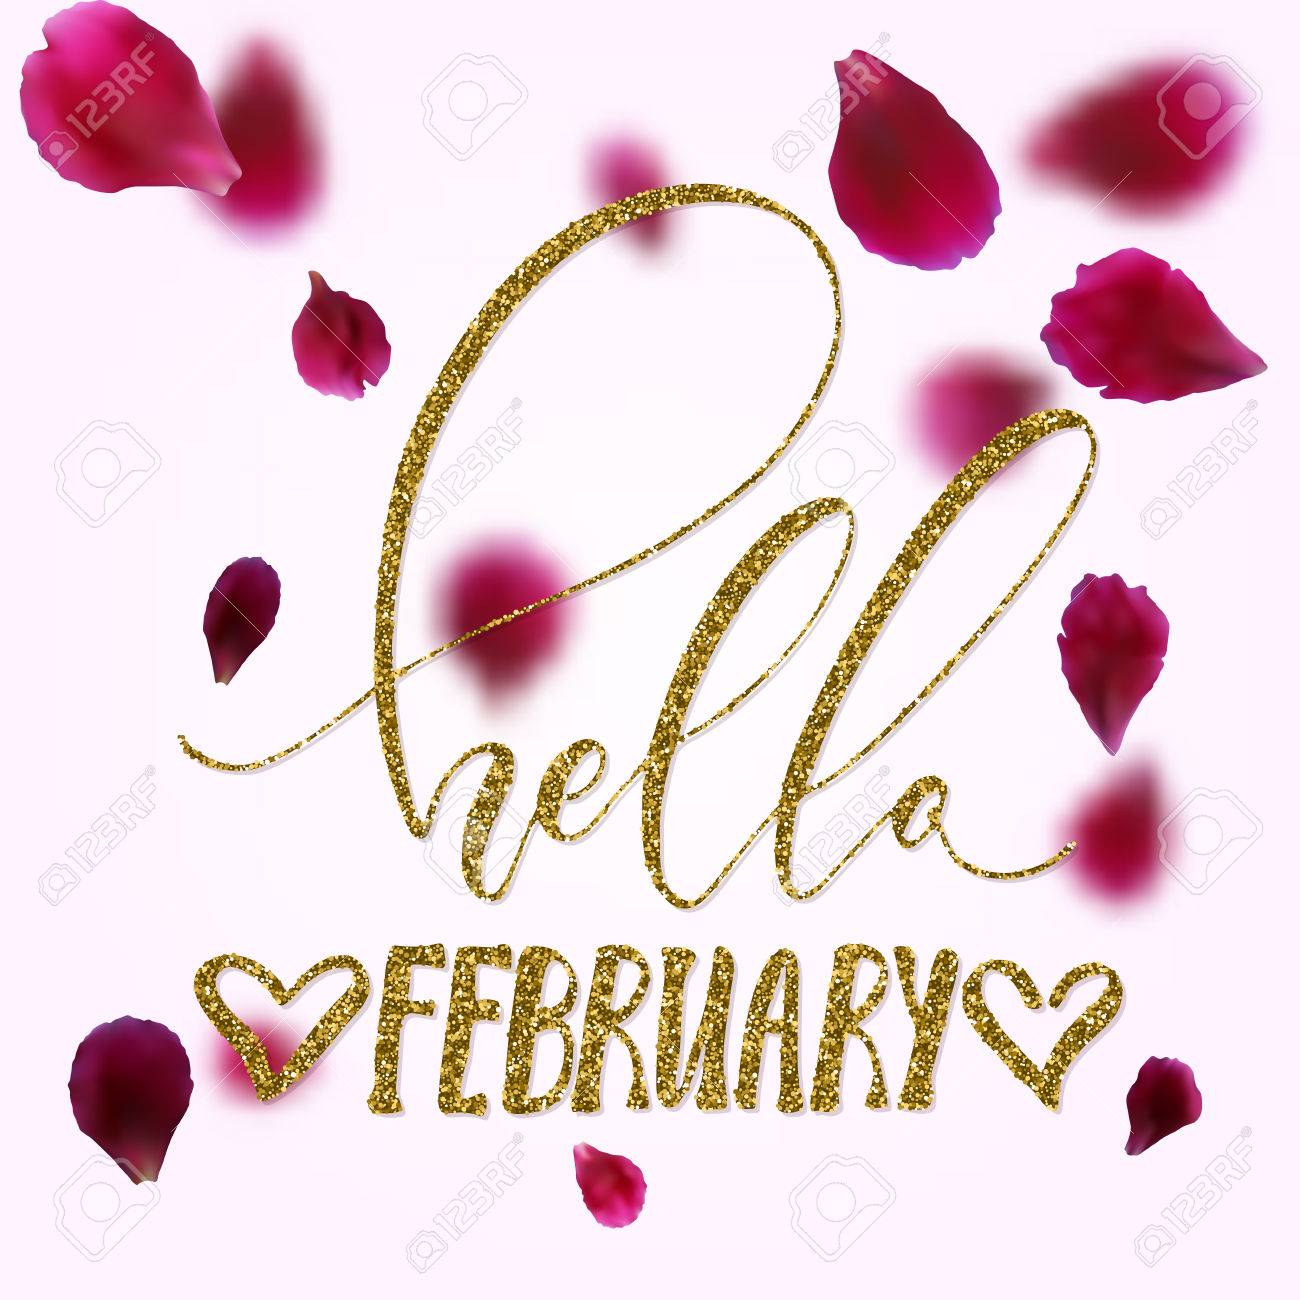 Hello February   Freehand Inspirational Romantic Quote With Golden Glitter  Texture. For Valentines Day,